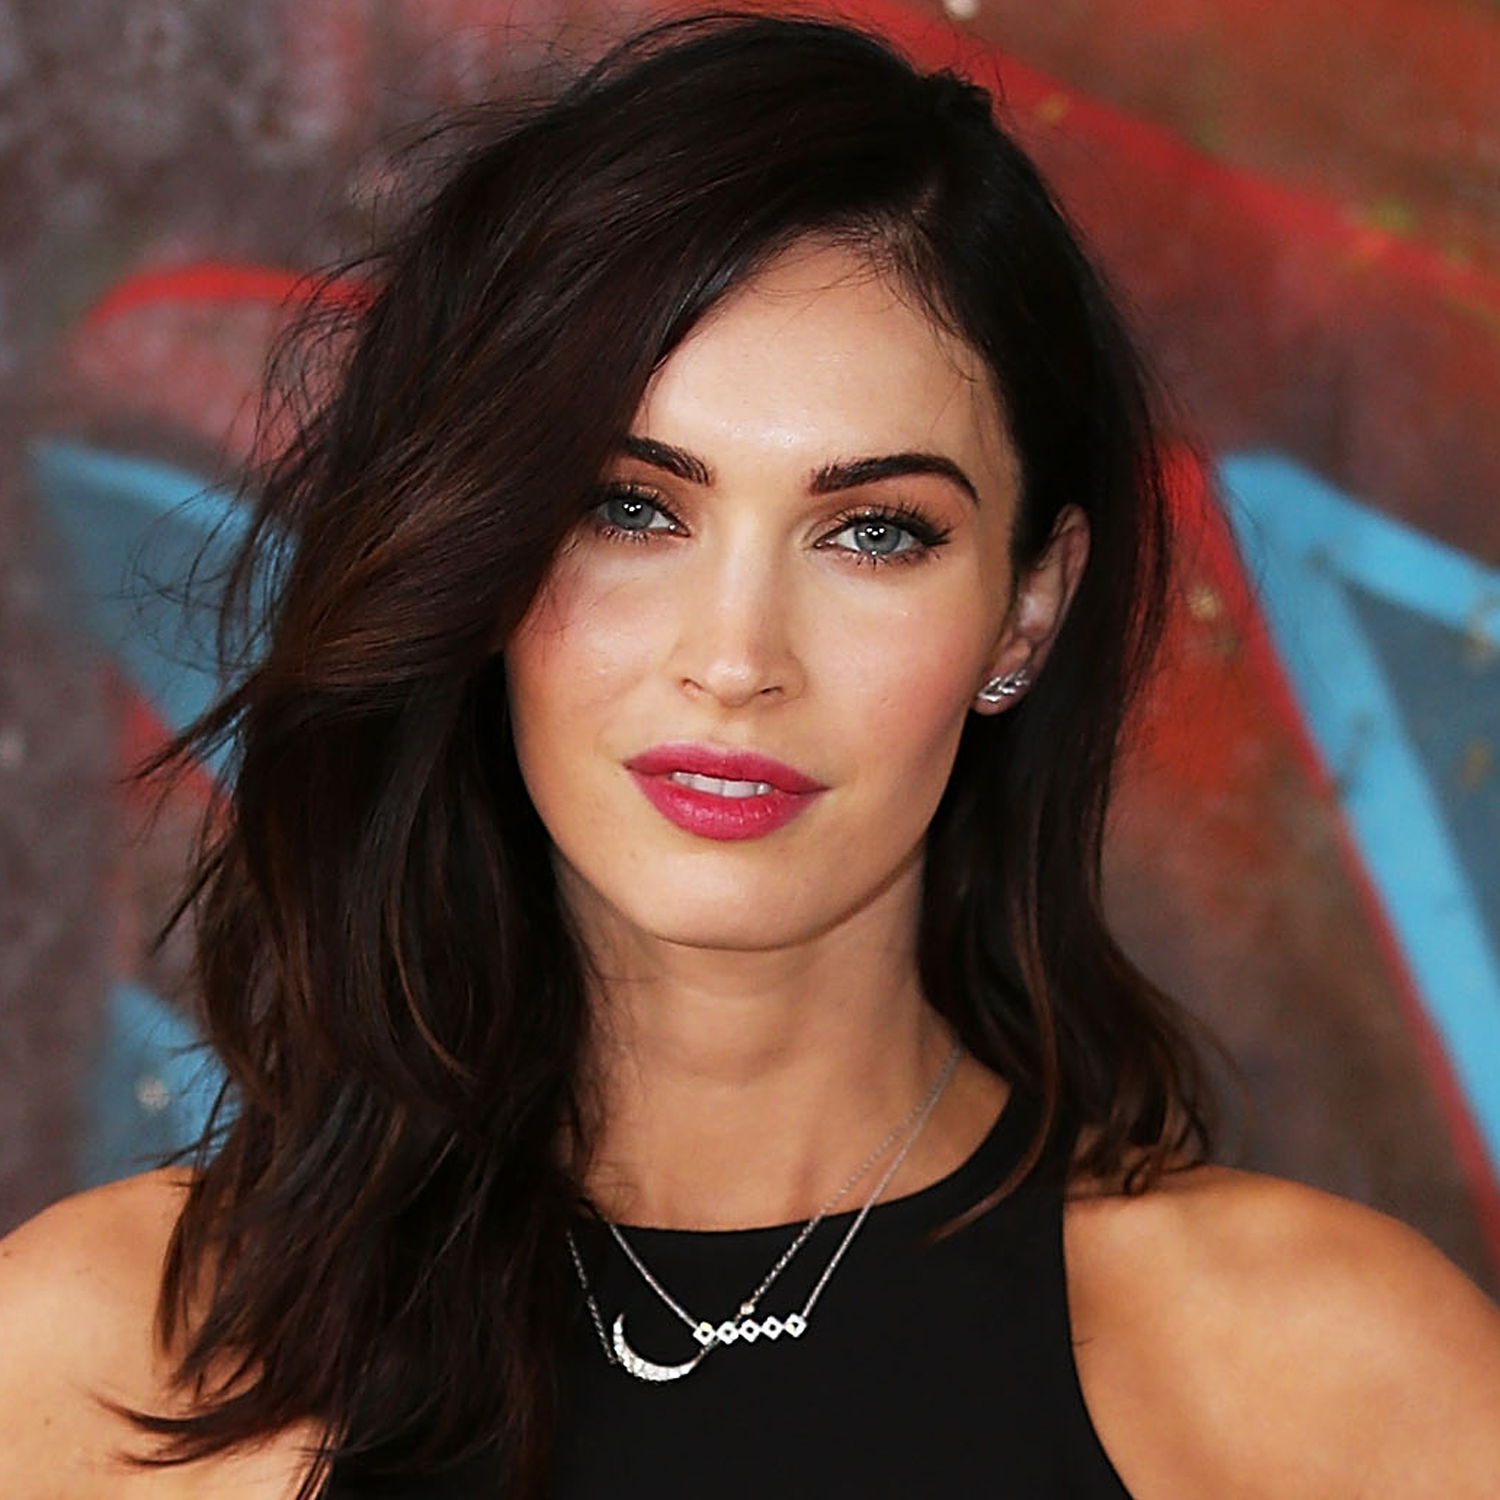 Phrase opinion Megan fox hair